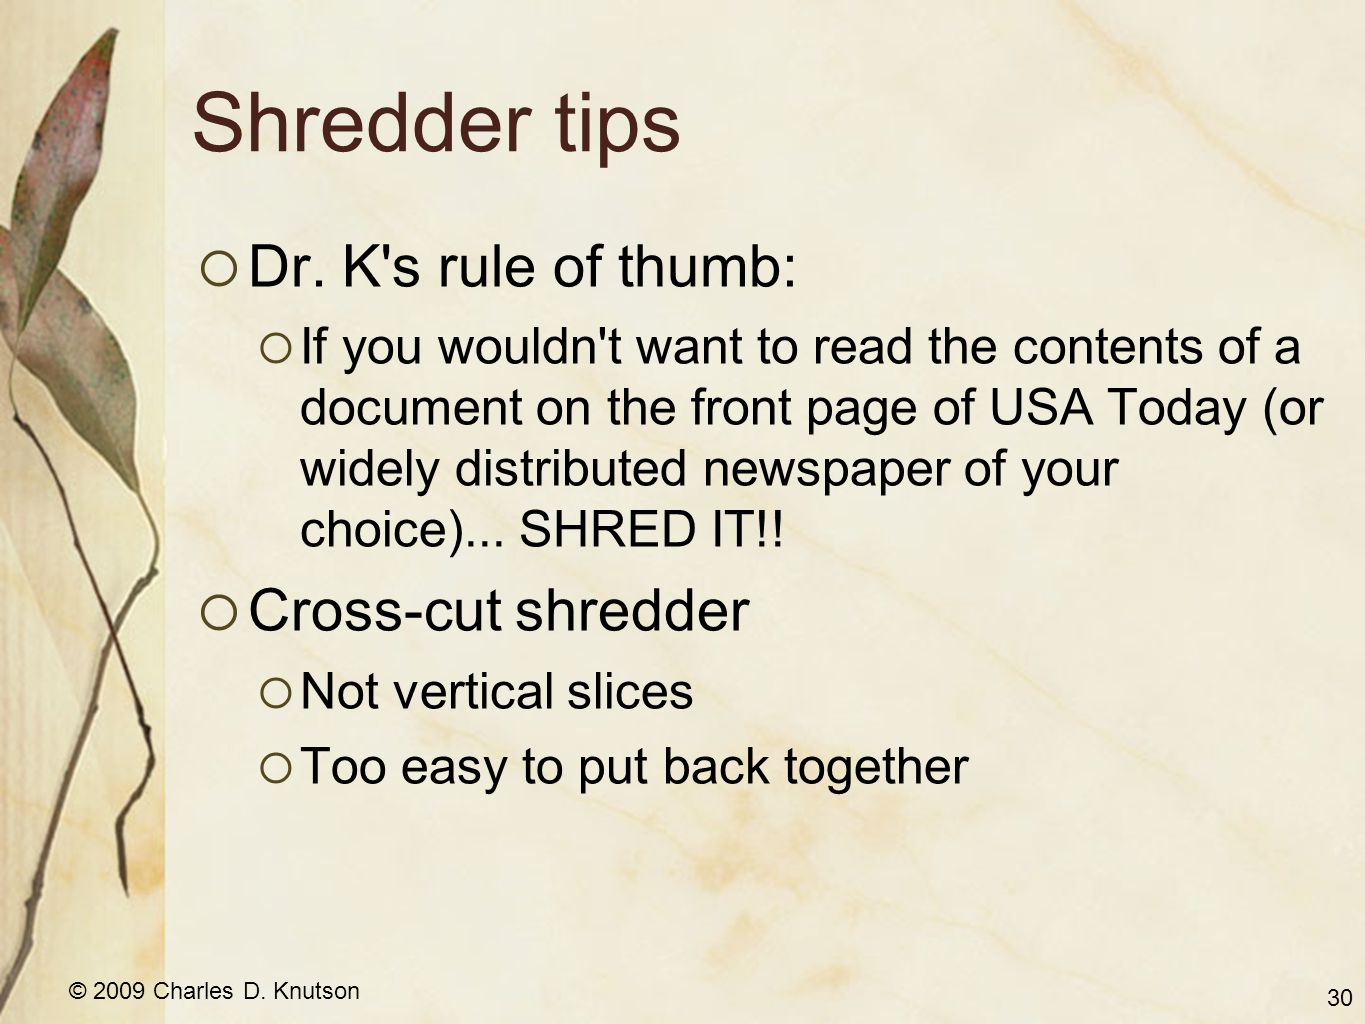 © 2009 Charles D. Knutson Shredder tips Dr. K's rule of thumb: If you wouldn't want to read the contents of a document on the front page of USA Today